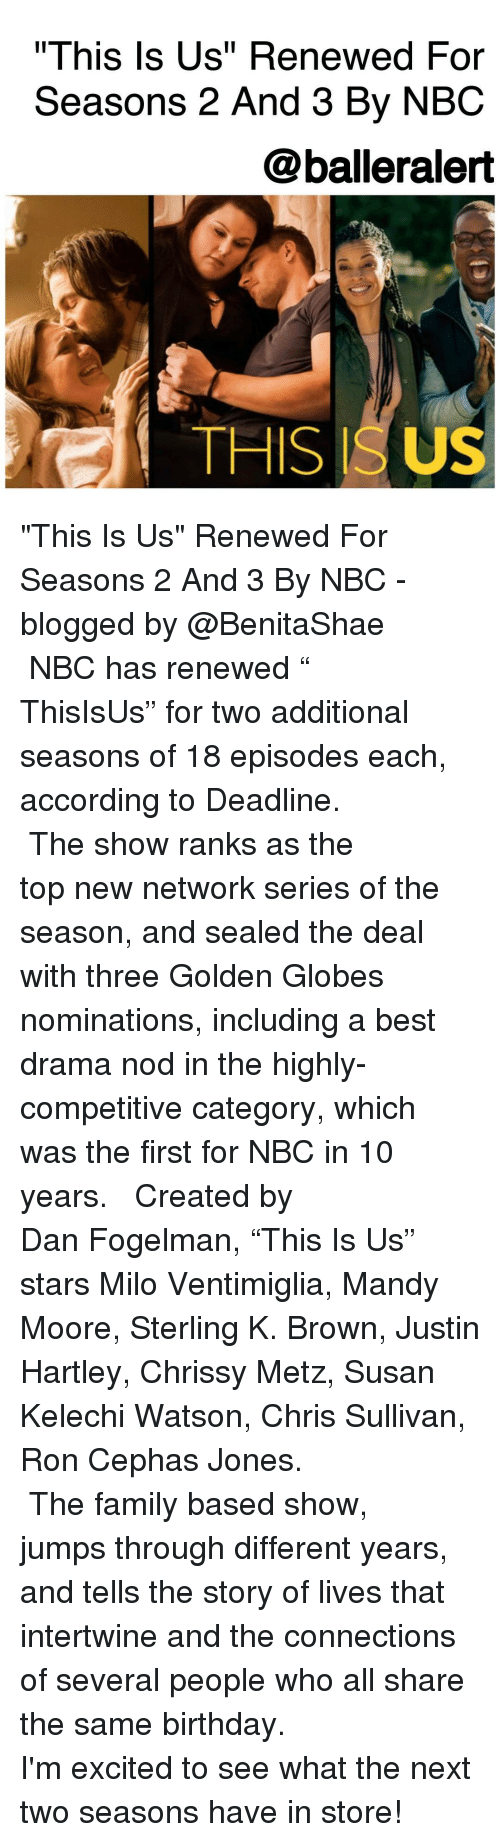 """Ronnings: """"This Is Us"""" Renewed For  Seasons 2 And 3 By NBC  @balleralert  THIS ISUS """"This Is Us"""" Renewed For Seasons 2 And 3 By NBC -blogged by @BenitaShae ⠀⠀⠀⠀⠀⠀⠀⠀⠀ ⠀⠀⠀⠀⠀⠀⠀⠀⠀ NBC has renewed """" ThisIsUs"""" for two additional seasons of 18 episodes each, according to Deadline. ⠀⠀⠀⠀⠀⠀⠀⠀⠀ ⠀⠀⠀⠀⠀⠀⠀⠀⠀ The show ranks as the top new network series of the season, and sealed the deal with three Golden Globes nominations, including a best drama nod in the highly-competitive category, which was the first for NBC in 10 years. ⠀⠀⠀⠀⠀⠀⠀⠀⠀ ⠀⠀⠀⠀⠀⠀⠀⠀⠀ Created by Dan Fogelman, """"This Is Us"""" stars Milo Ventimiglia, Mandy Moore, Sterling K. Brown, Justin Hartley, Chrissy Metz, Susan Kelechi Watson, Chris Sullivan, Ron Cephas Jones. ⠀⠀⠀⠀⠀⠀⠀⠀⠀ ⠀⠀⠀⠀⠀⠀⠀⠀⠀ The family based show, jumps through different years, and tells the story of lives that intertwine and the connections of several people who all share the same birthday. ⠀⠀⠀⠀⠀⠀⠀⠀⠀ ⠀⠀⠀⠀⠀⠀⠀⠀⠀ I'm excited to see what the next two seasons have in store!"""